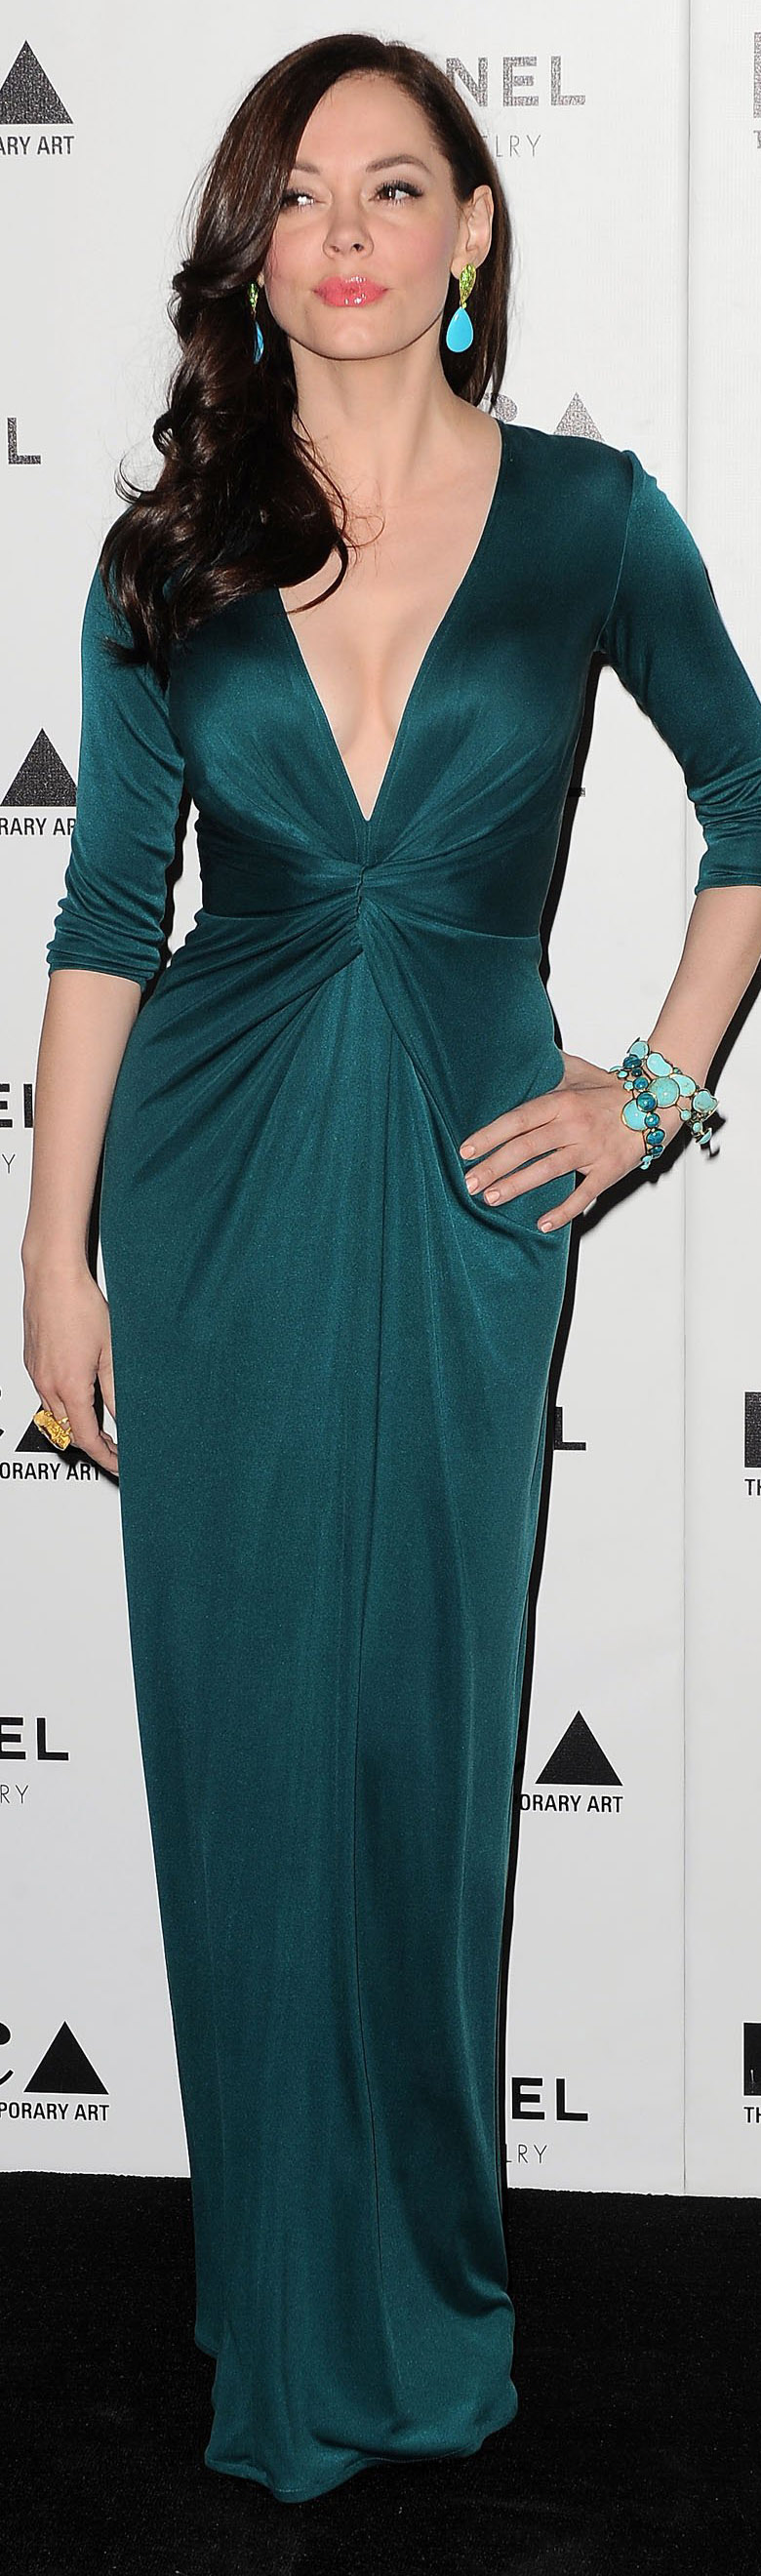 Rose mcgowan iss gown turquoise jewelry uc party dresses